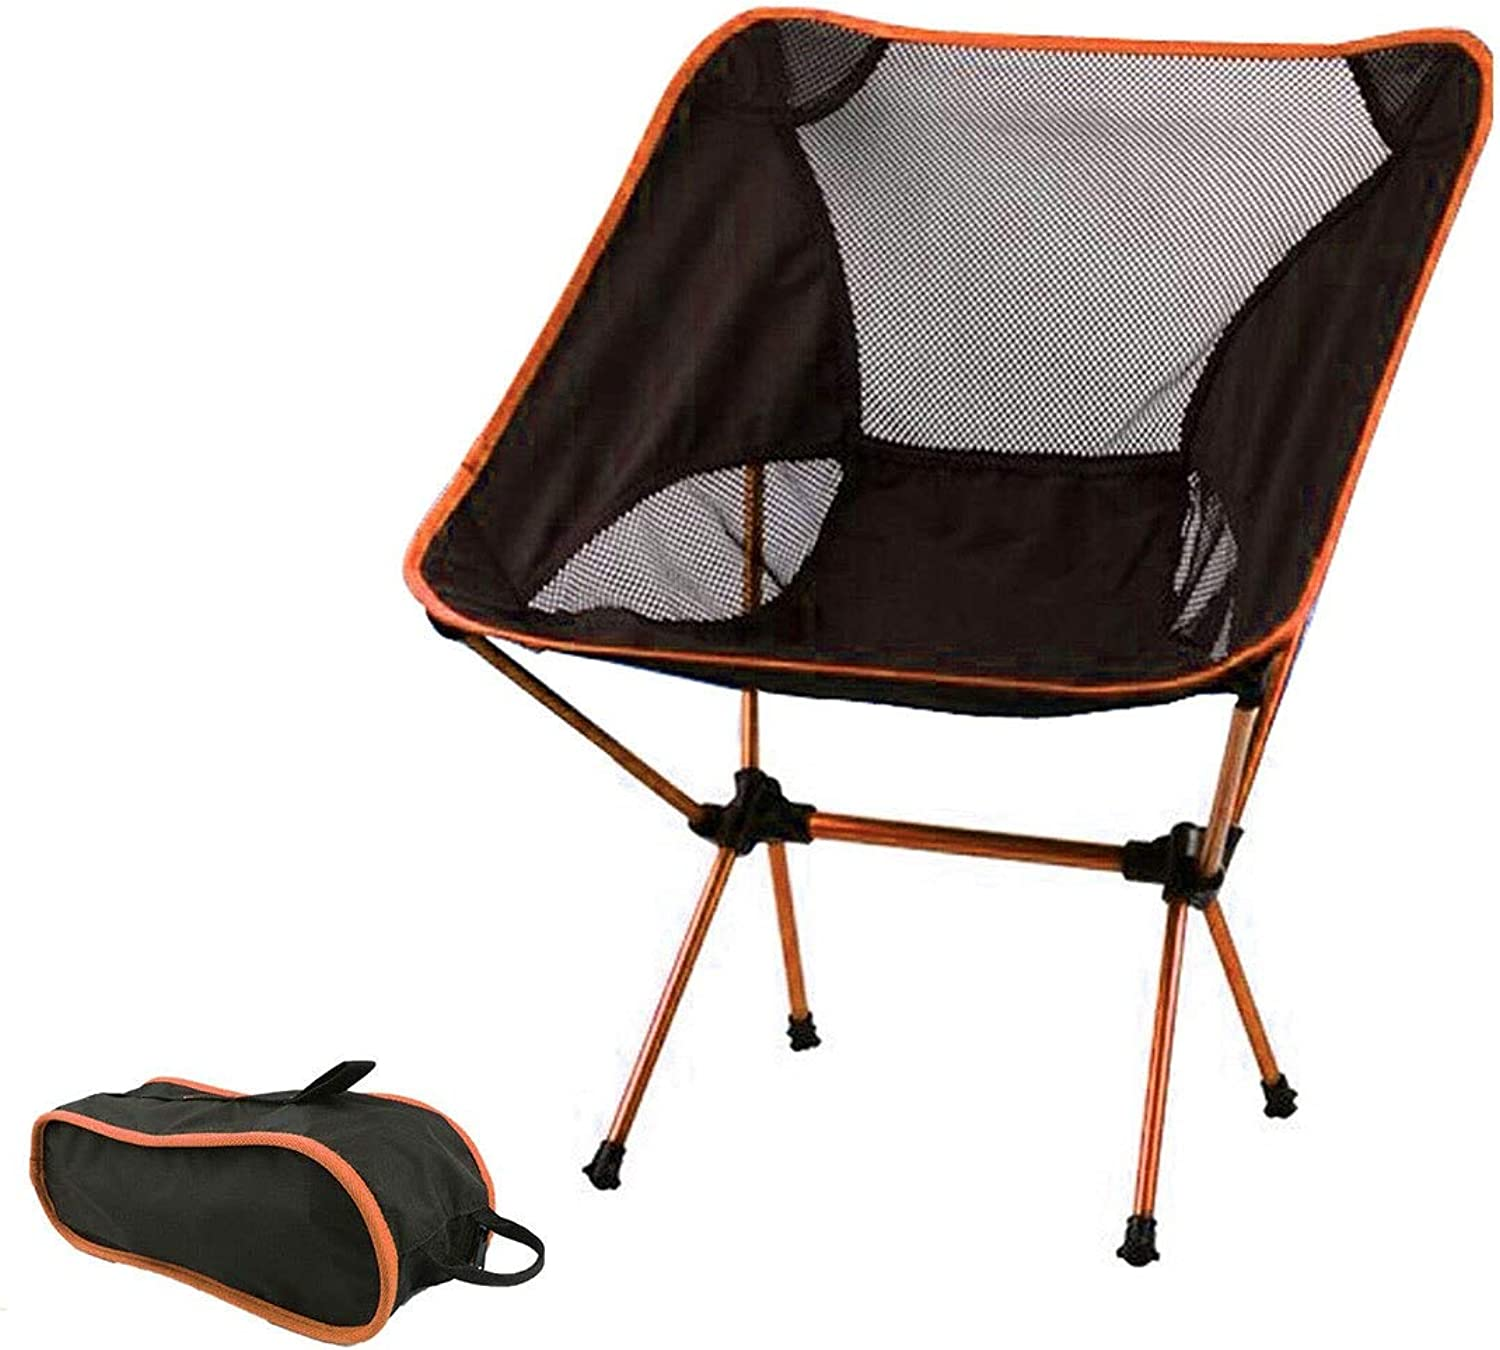 Ultralight Folding Portable Camping Chair Compact Backpacking Beach Lounge Heavy Duty Outdoor Camp Chairs Lightweight Travel Picnic Hiking Fishing BBQ Bag